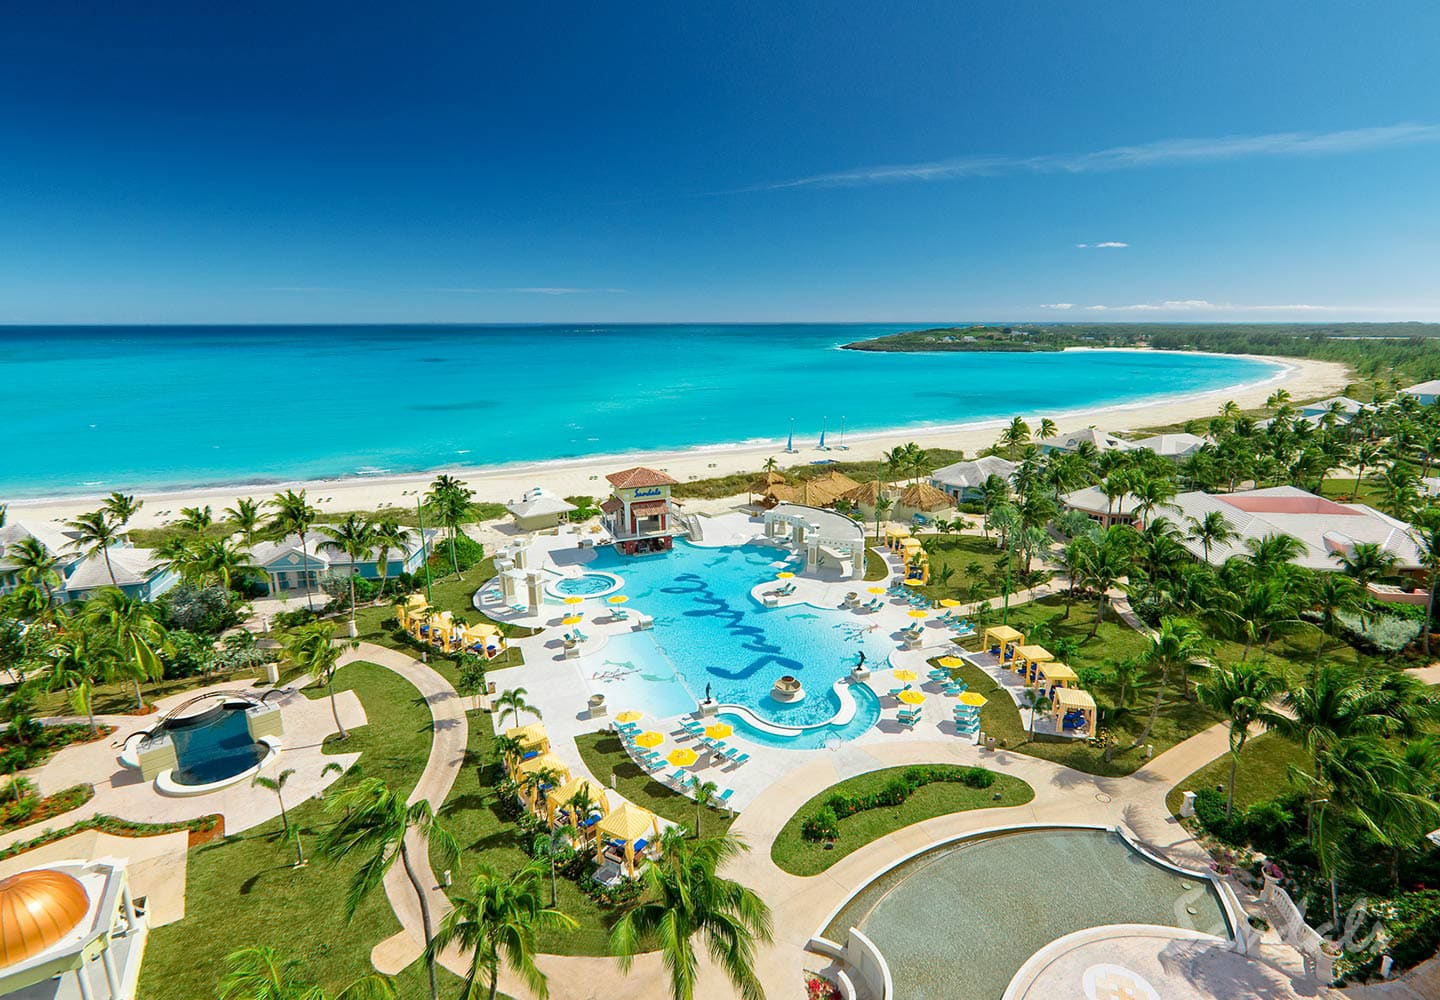 sandals all inclusive luxury resort, luxury all inclusive resorts